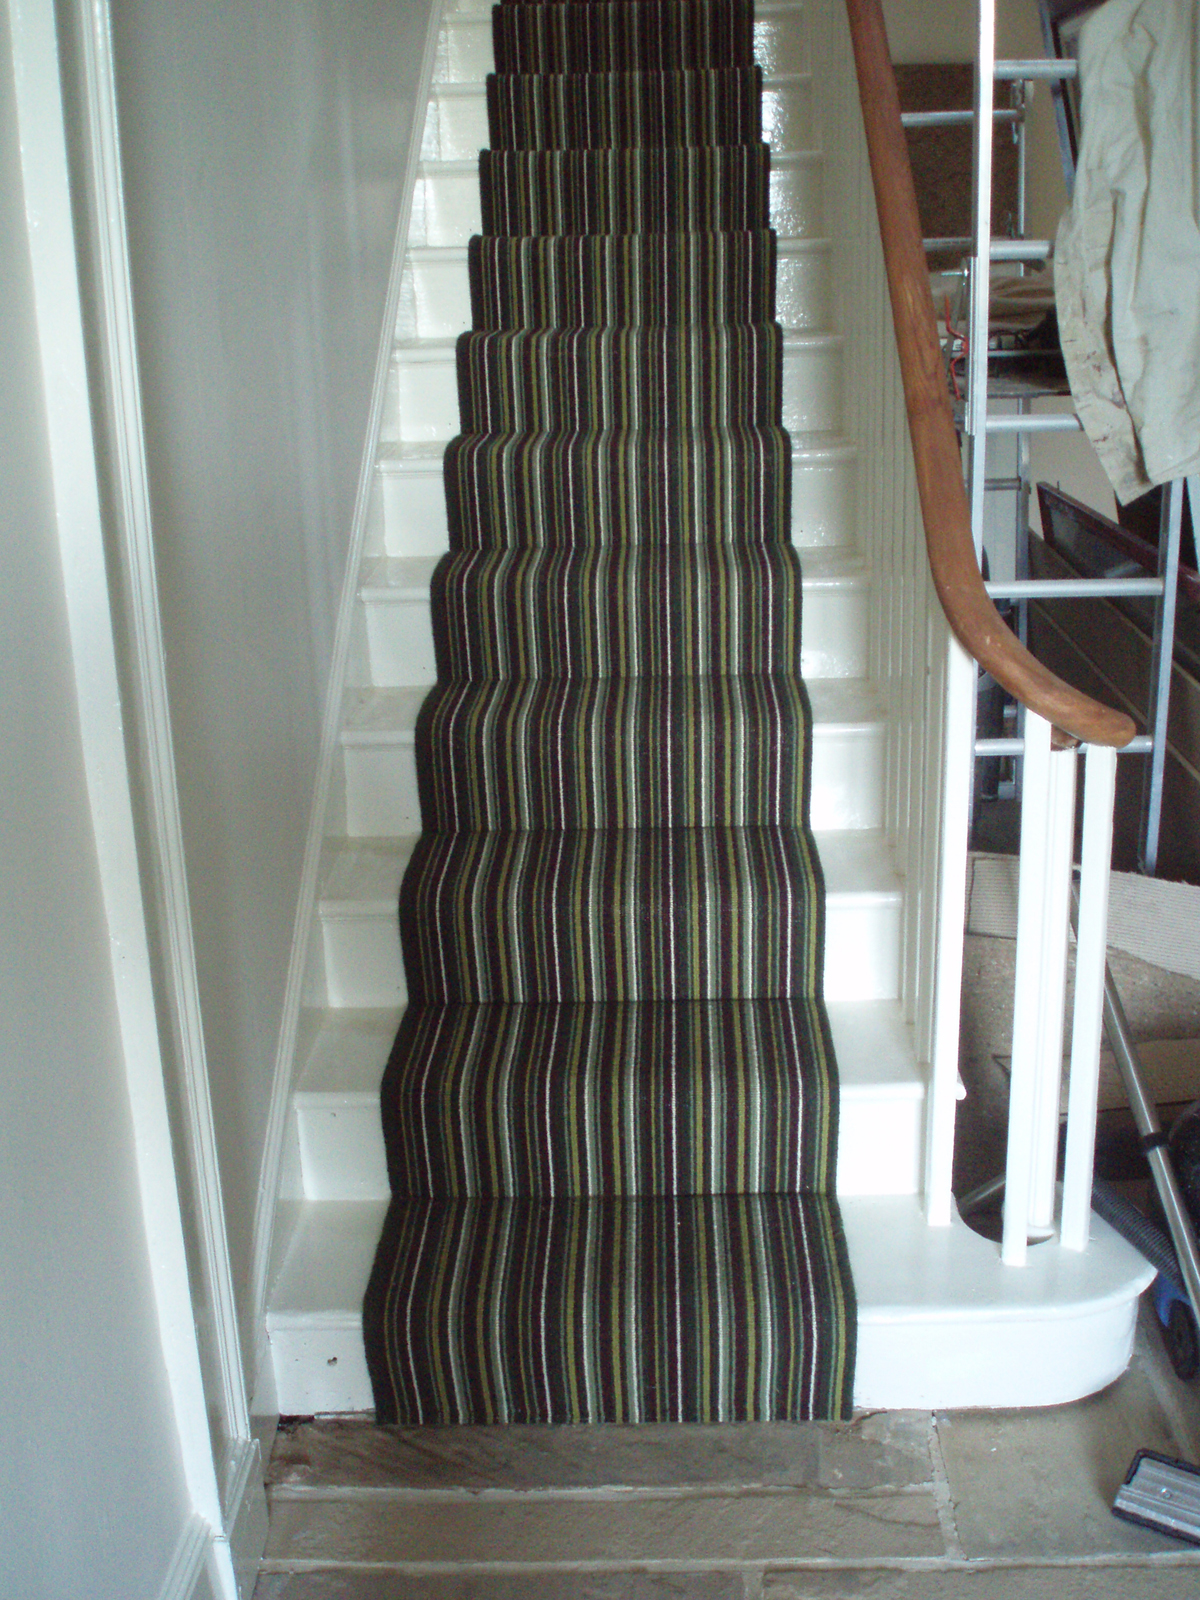 Gallery Pocklington Carpets